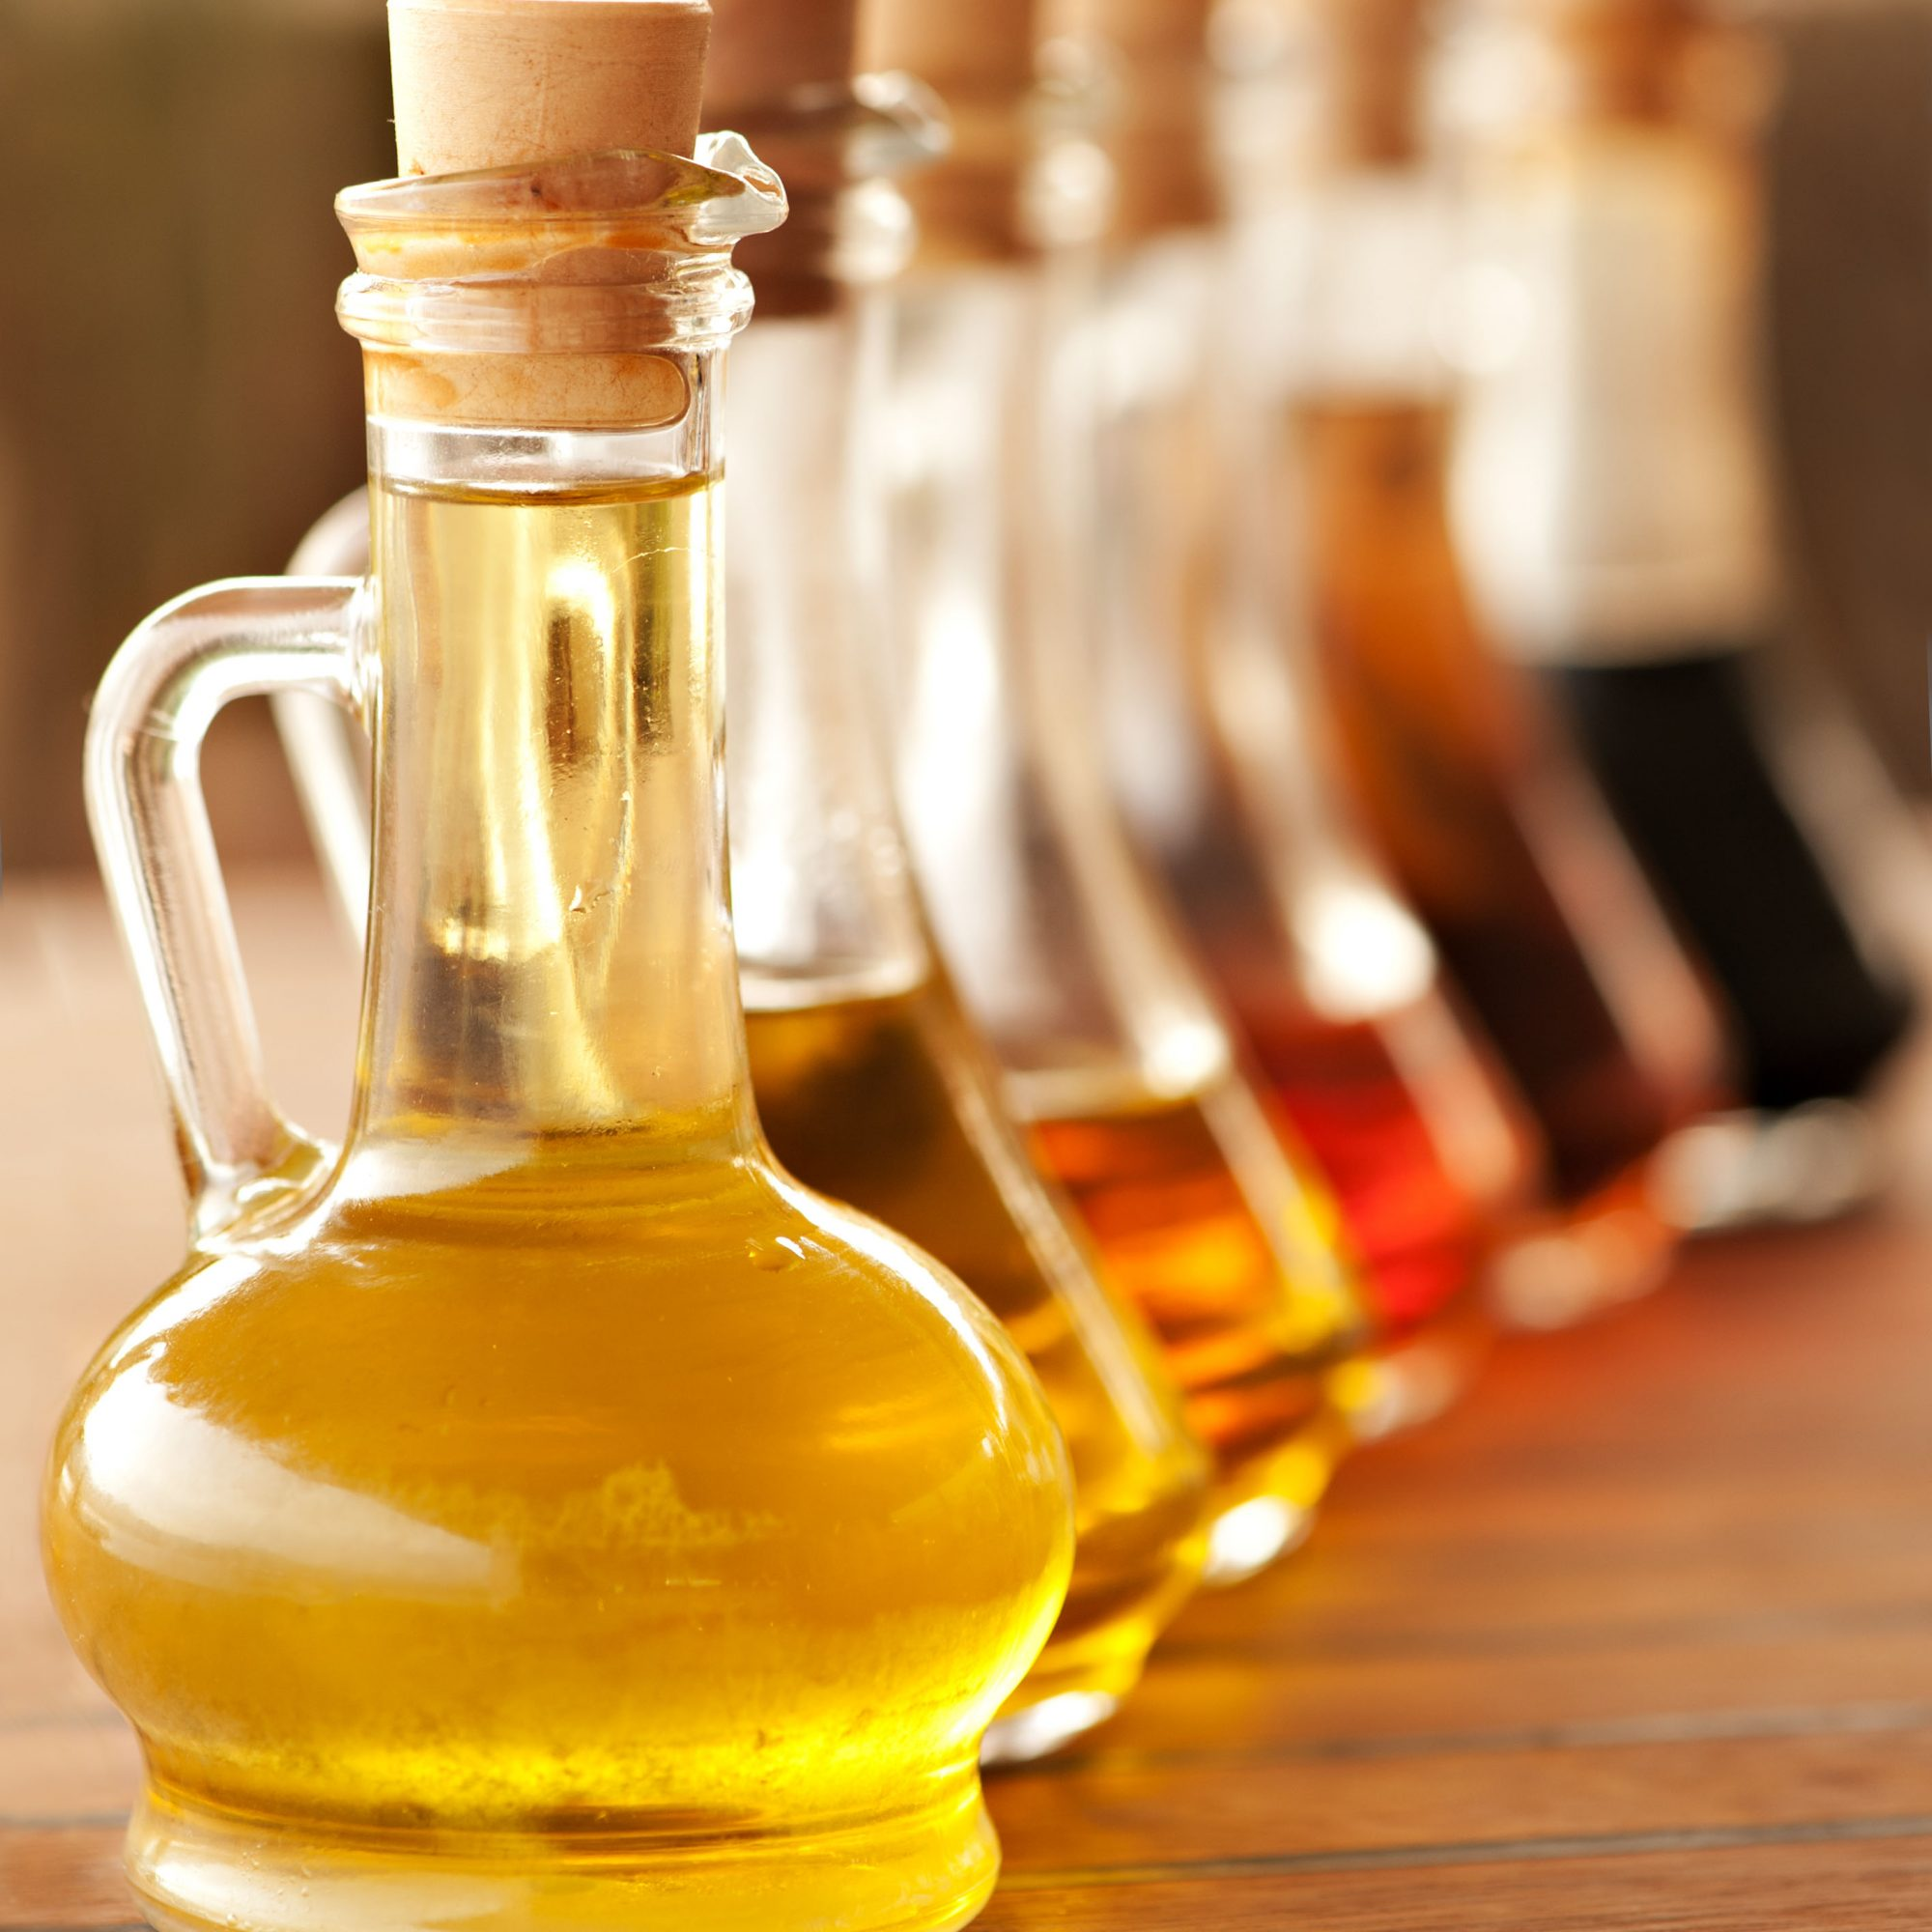 Olive_Oil_And_Vinegar_Bottles_On_A_Table